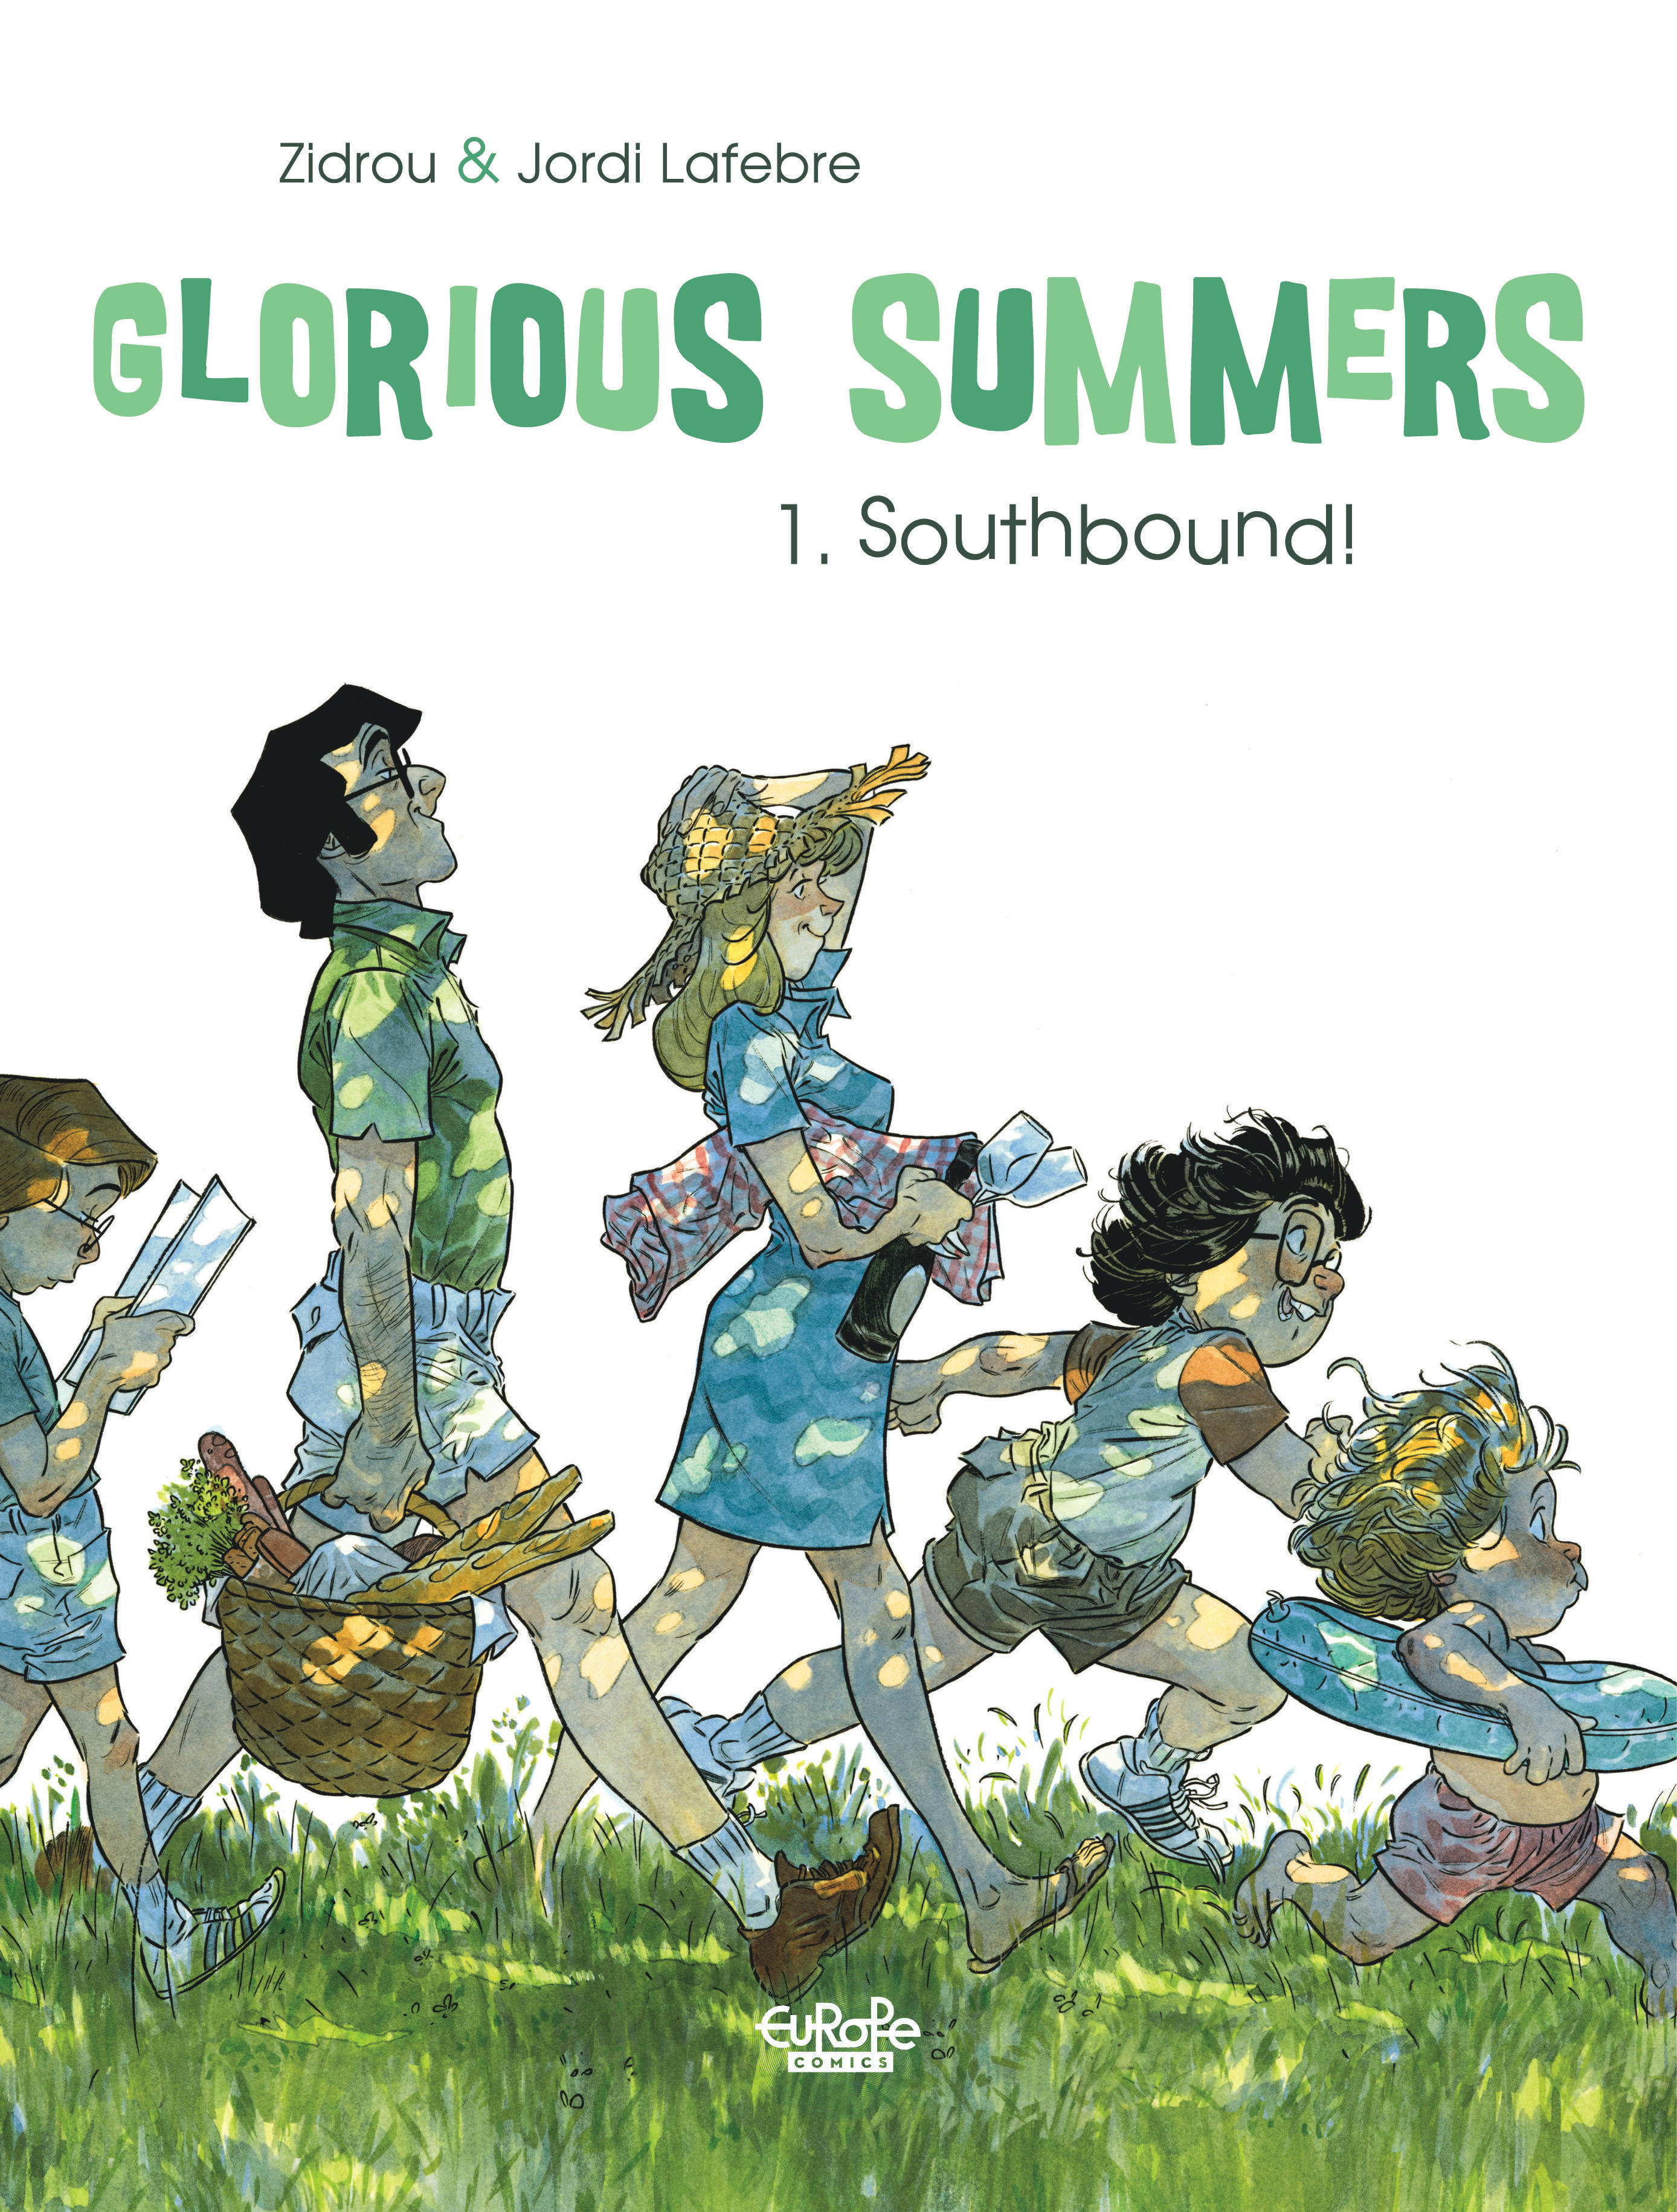 Glorious Summers 1. Southbo...